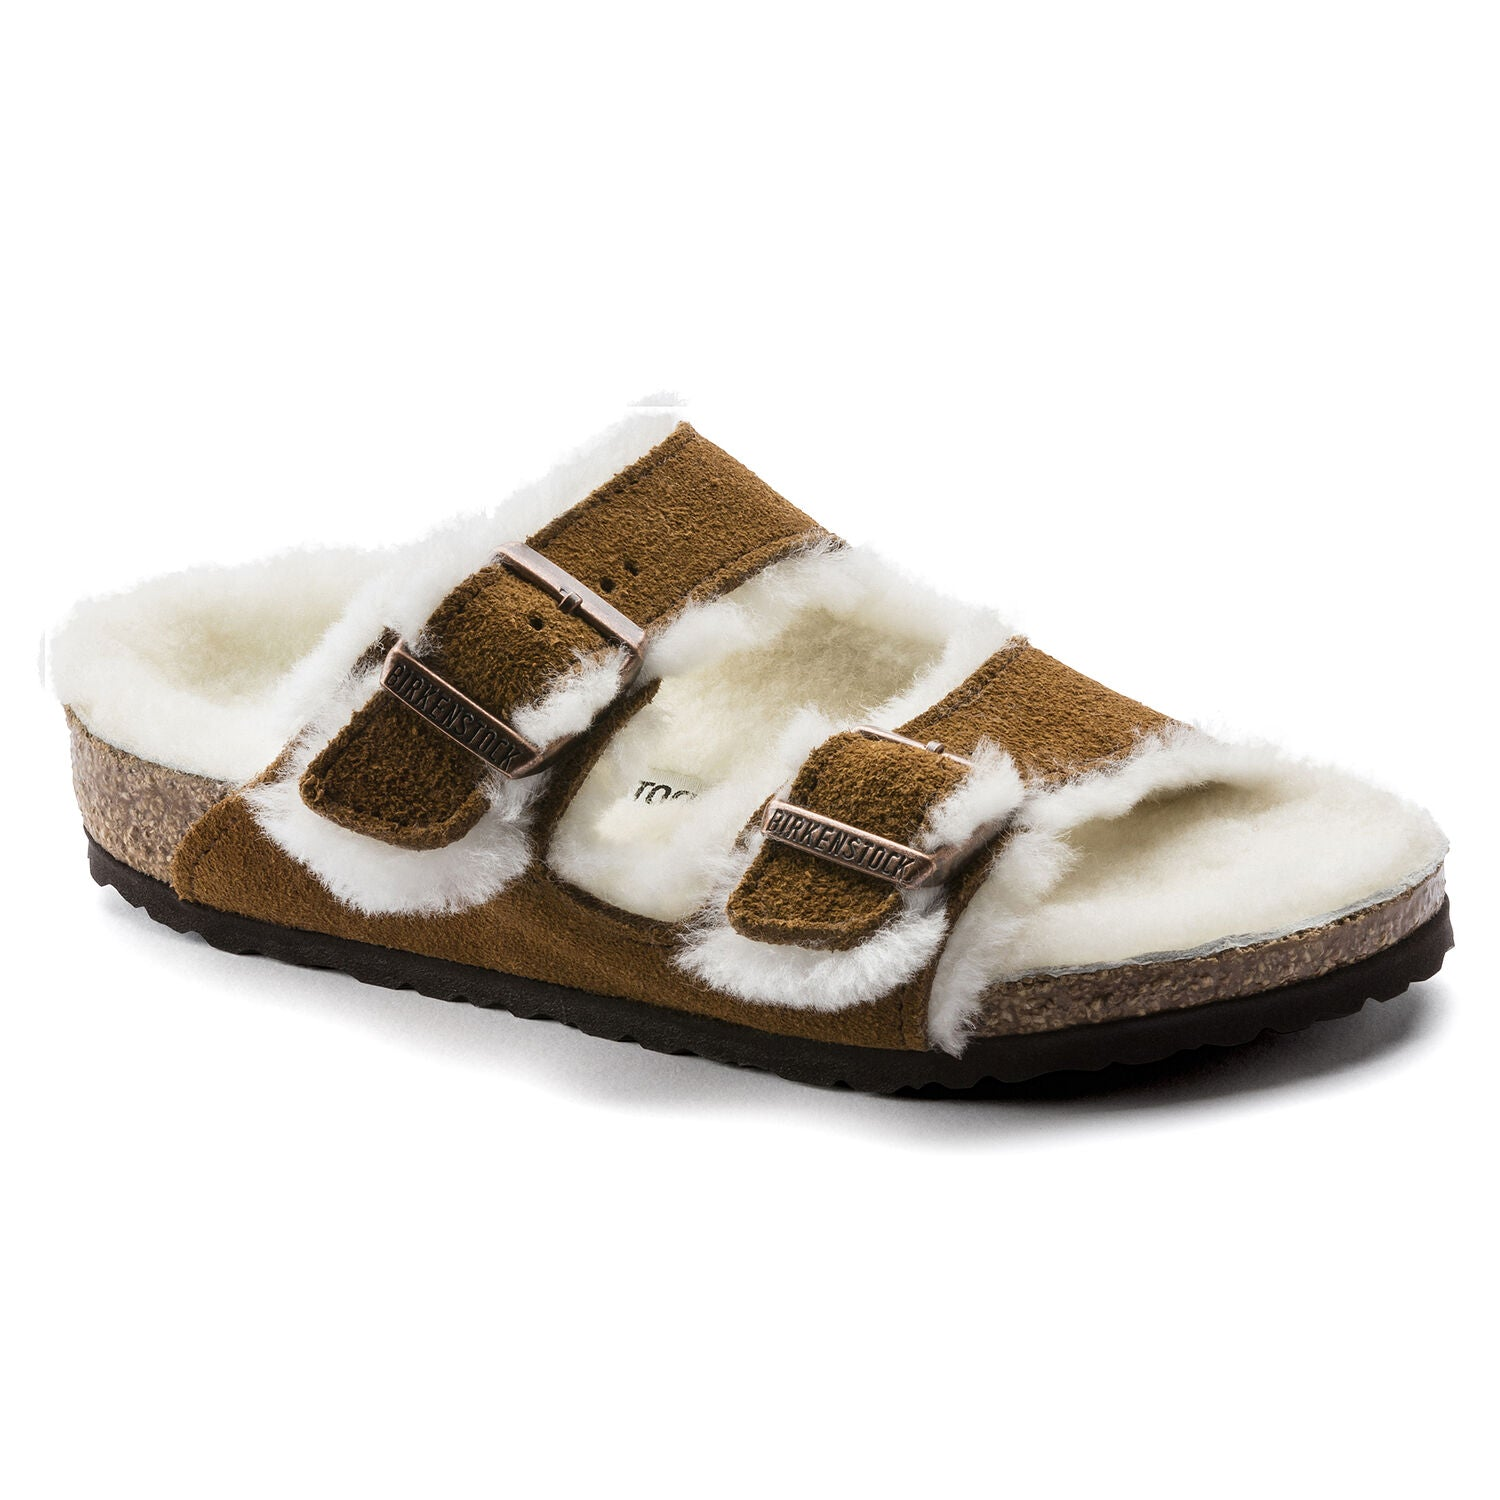 Kids Arizona Shearling Suede Sandal - Mink